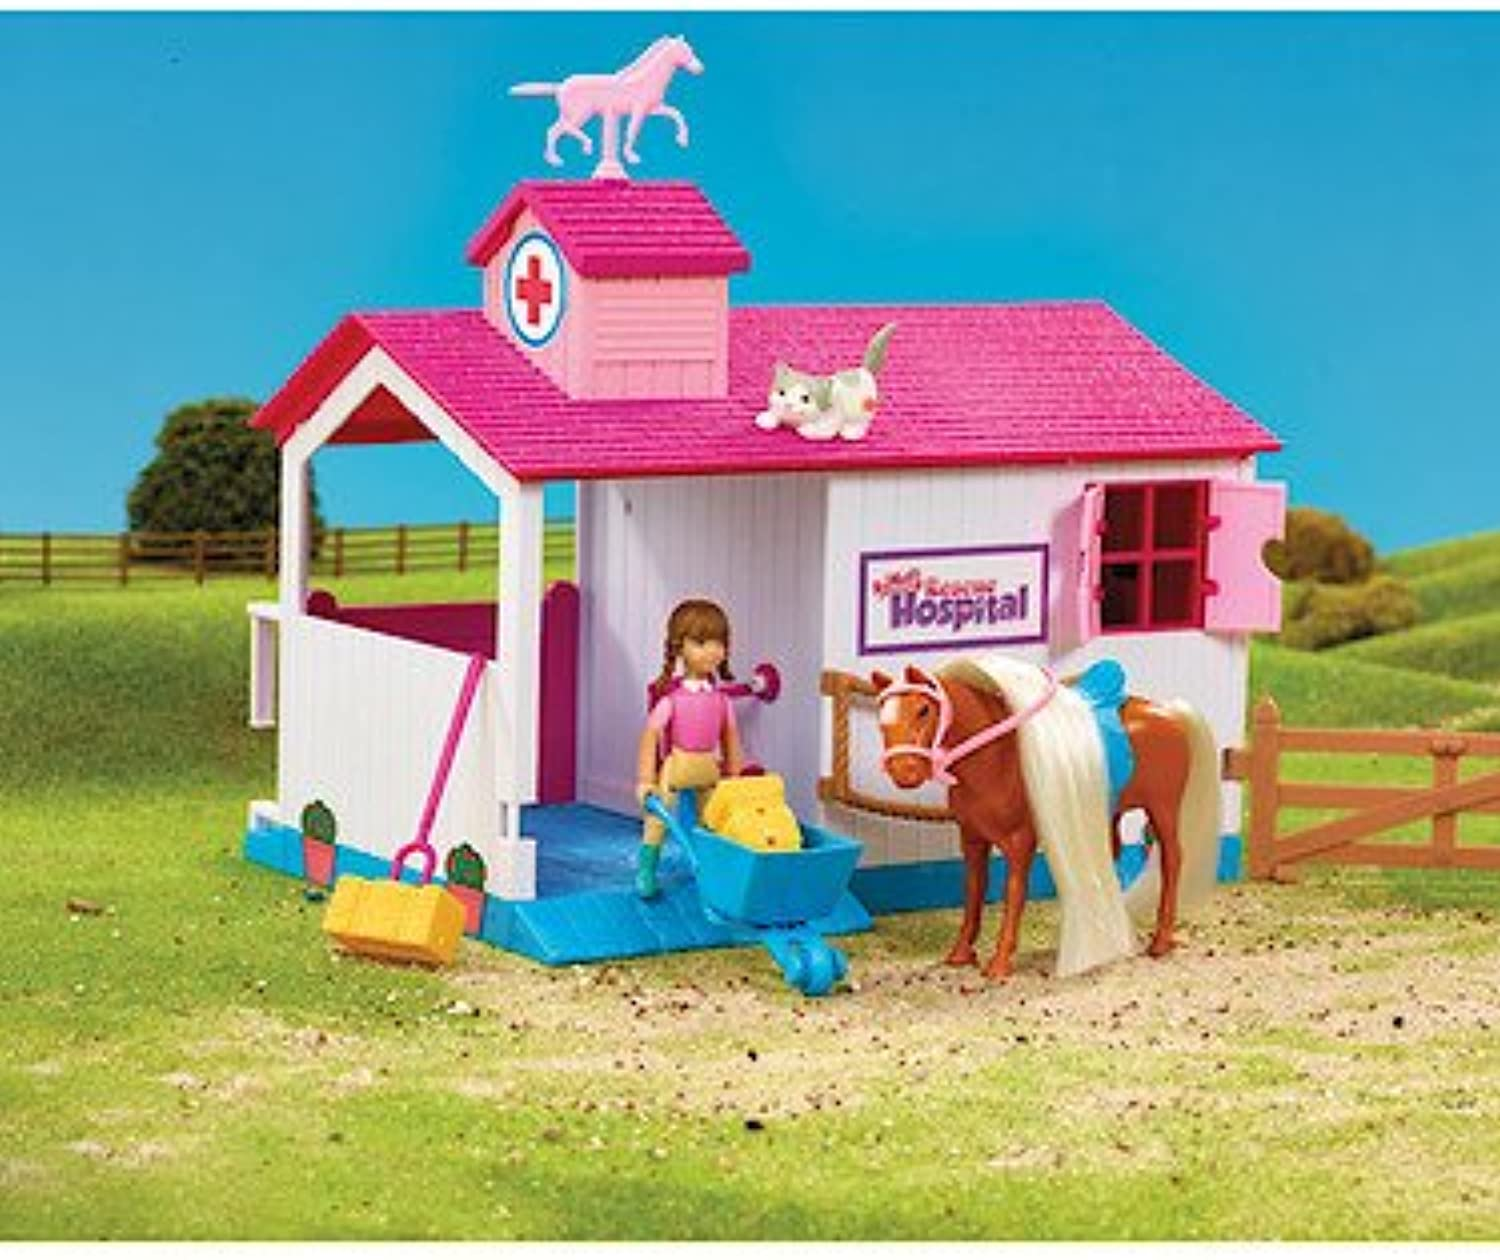 Animagic Rescue Hospital blueebell Stables Action Figure